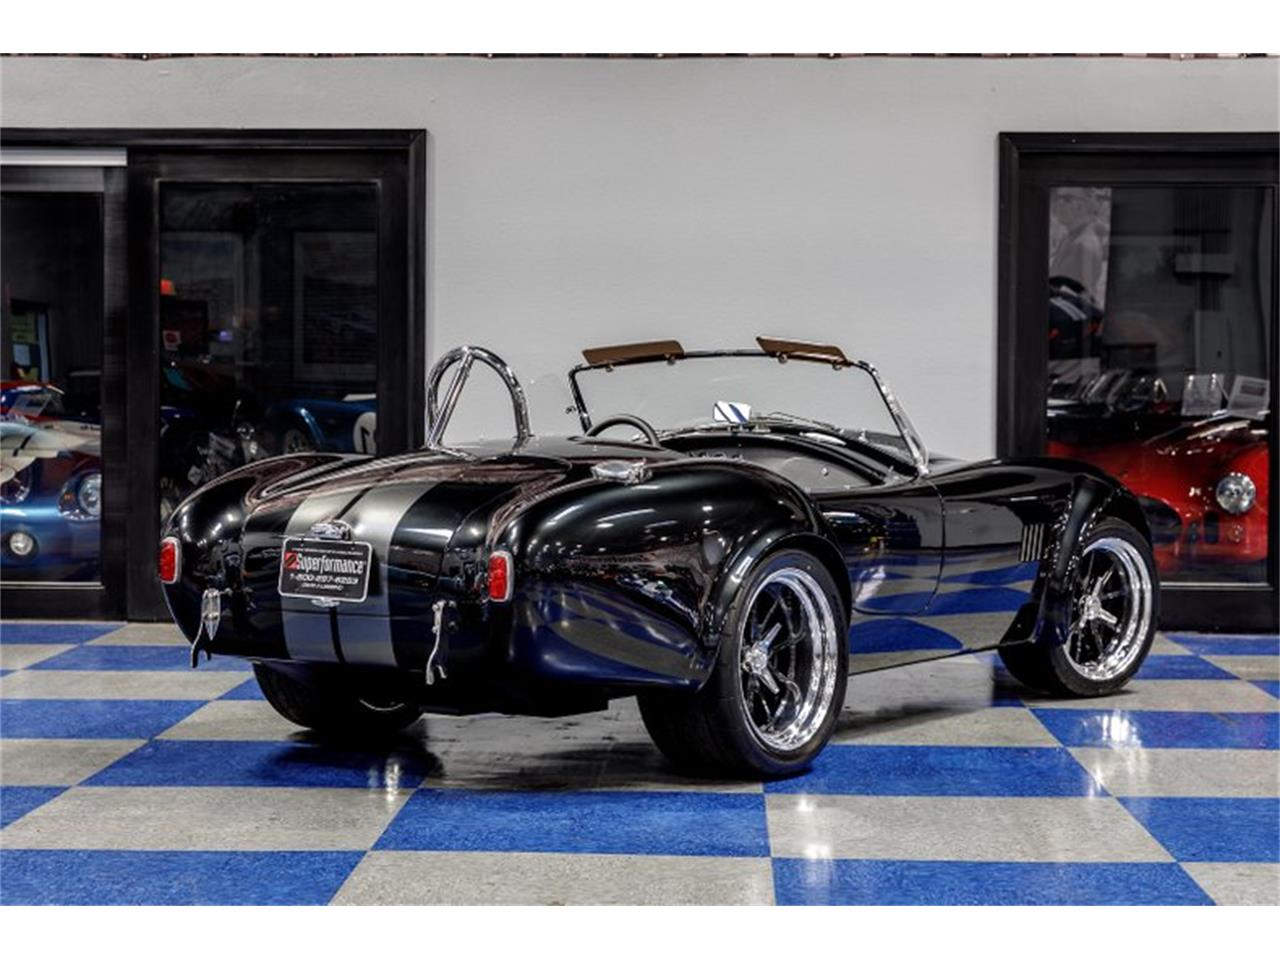 1900 Superformance MKIII (CC-1234154) for sale in Irvine, California